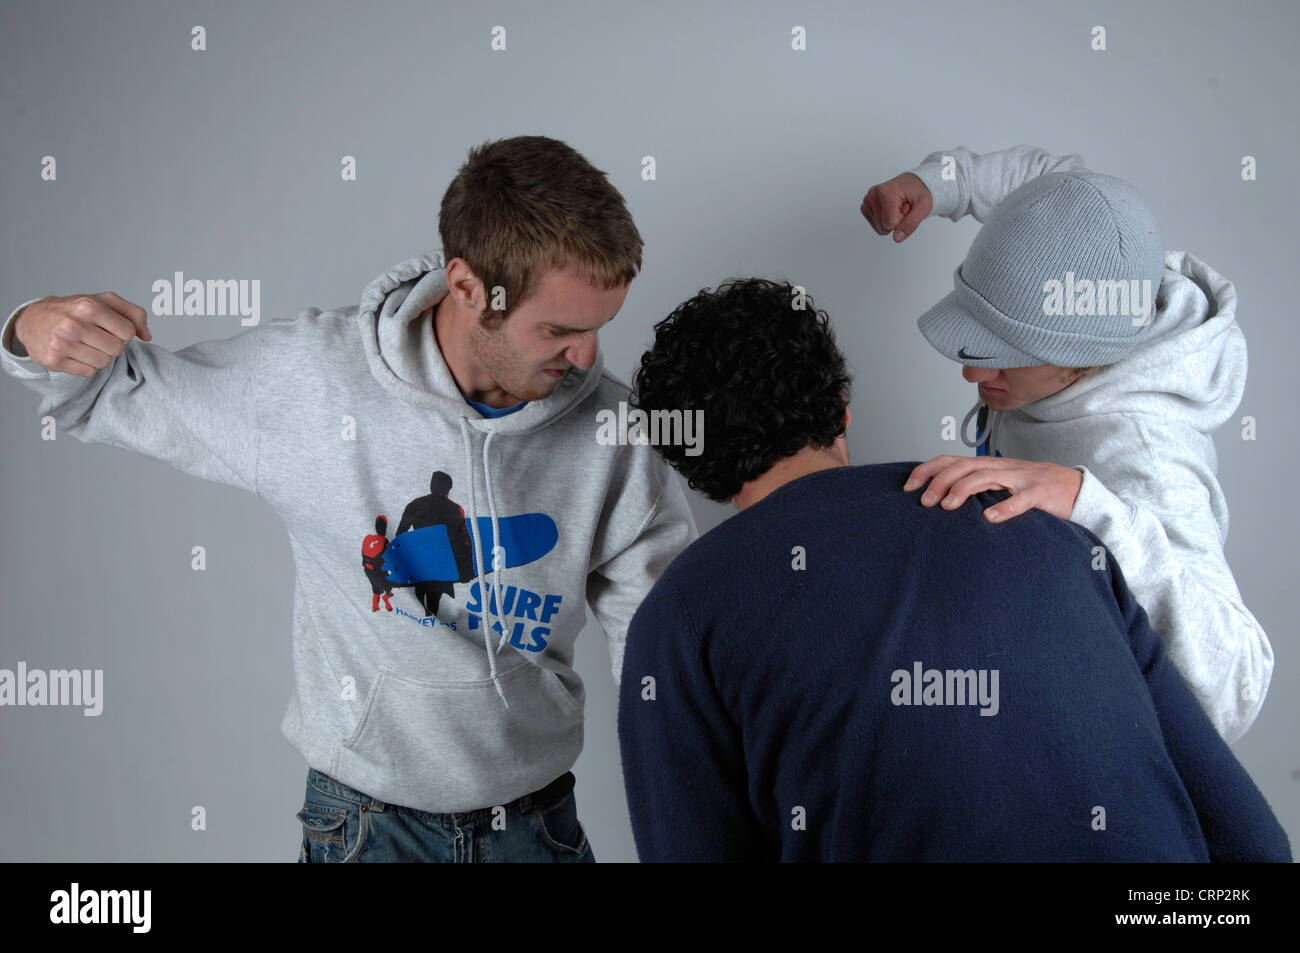 Two young men beating up a young man - Stock Image